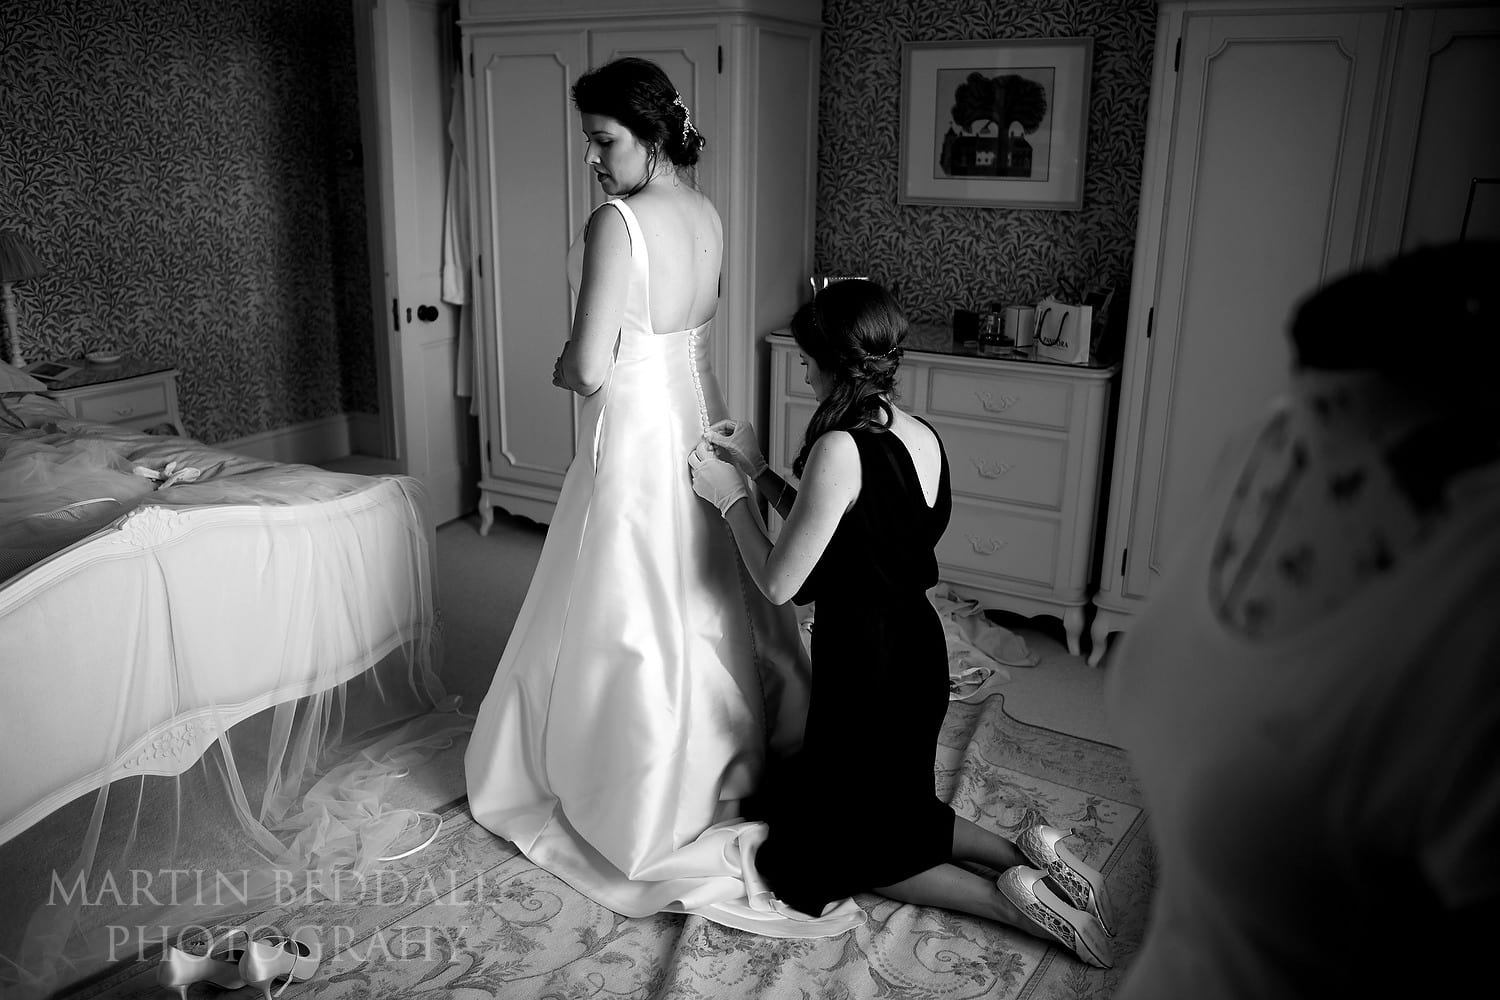 Fastening up the bride's dress